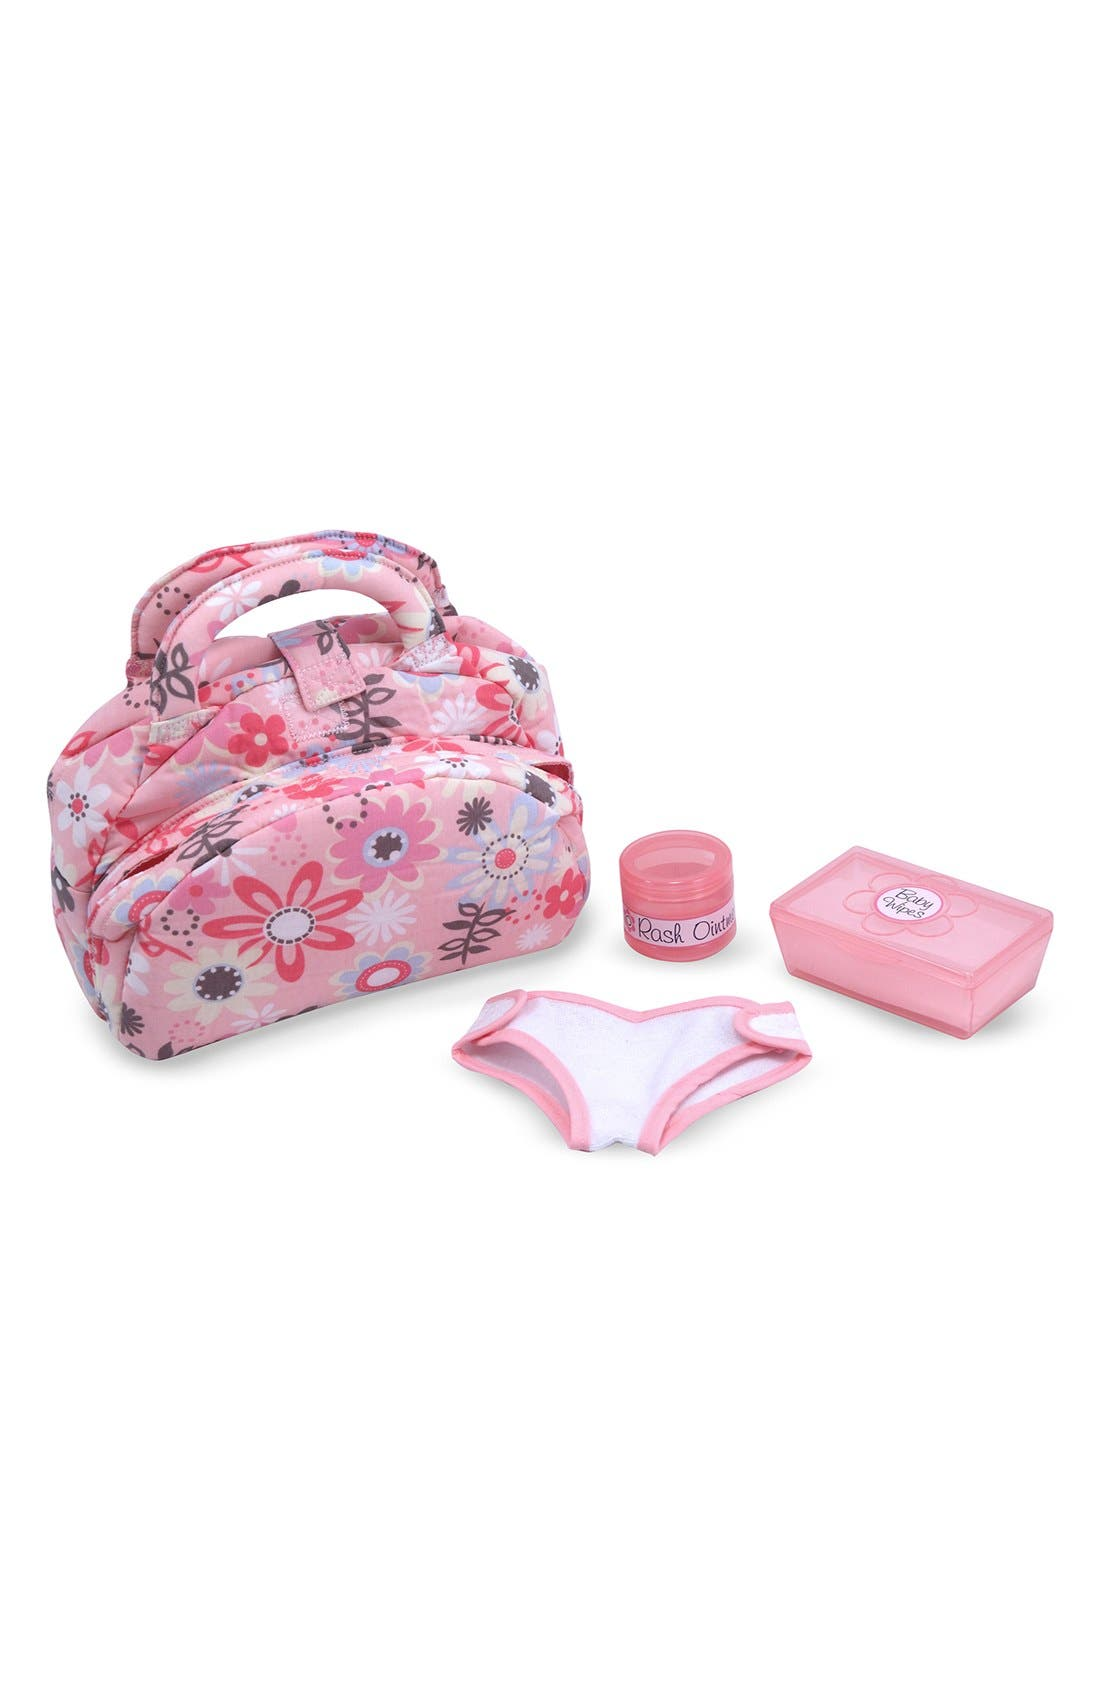 Baby Doll Accessories Set,                             Alternate thumbnail 4, color,                             PINK